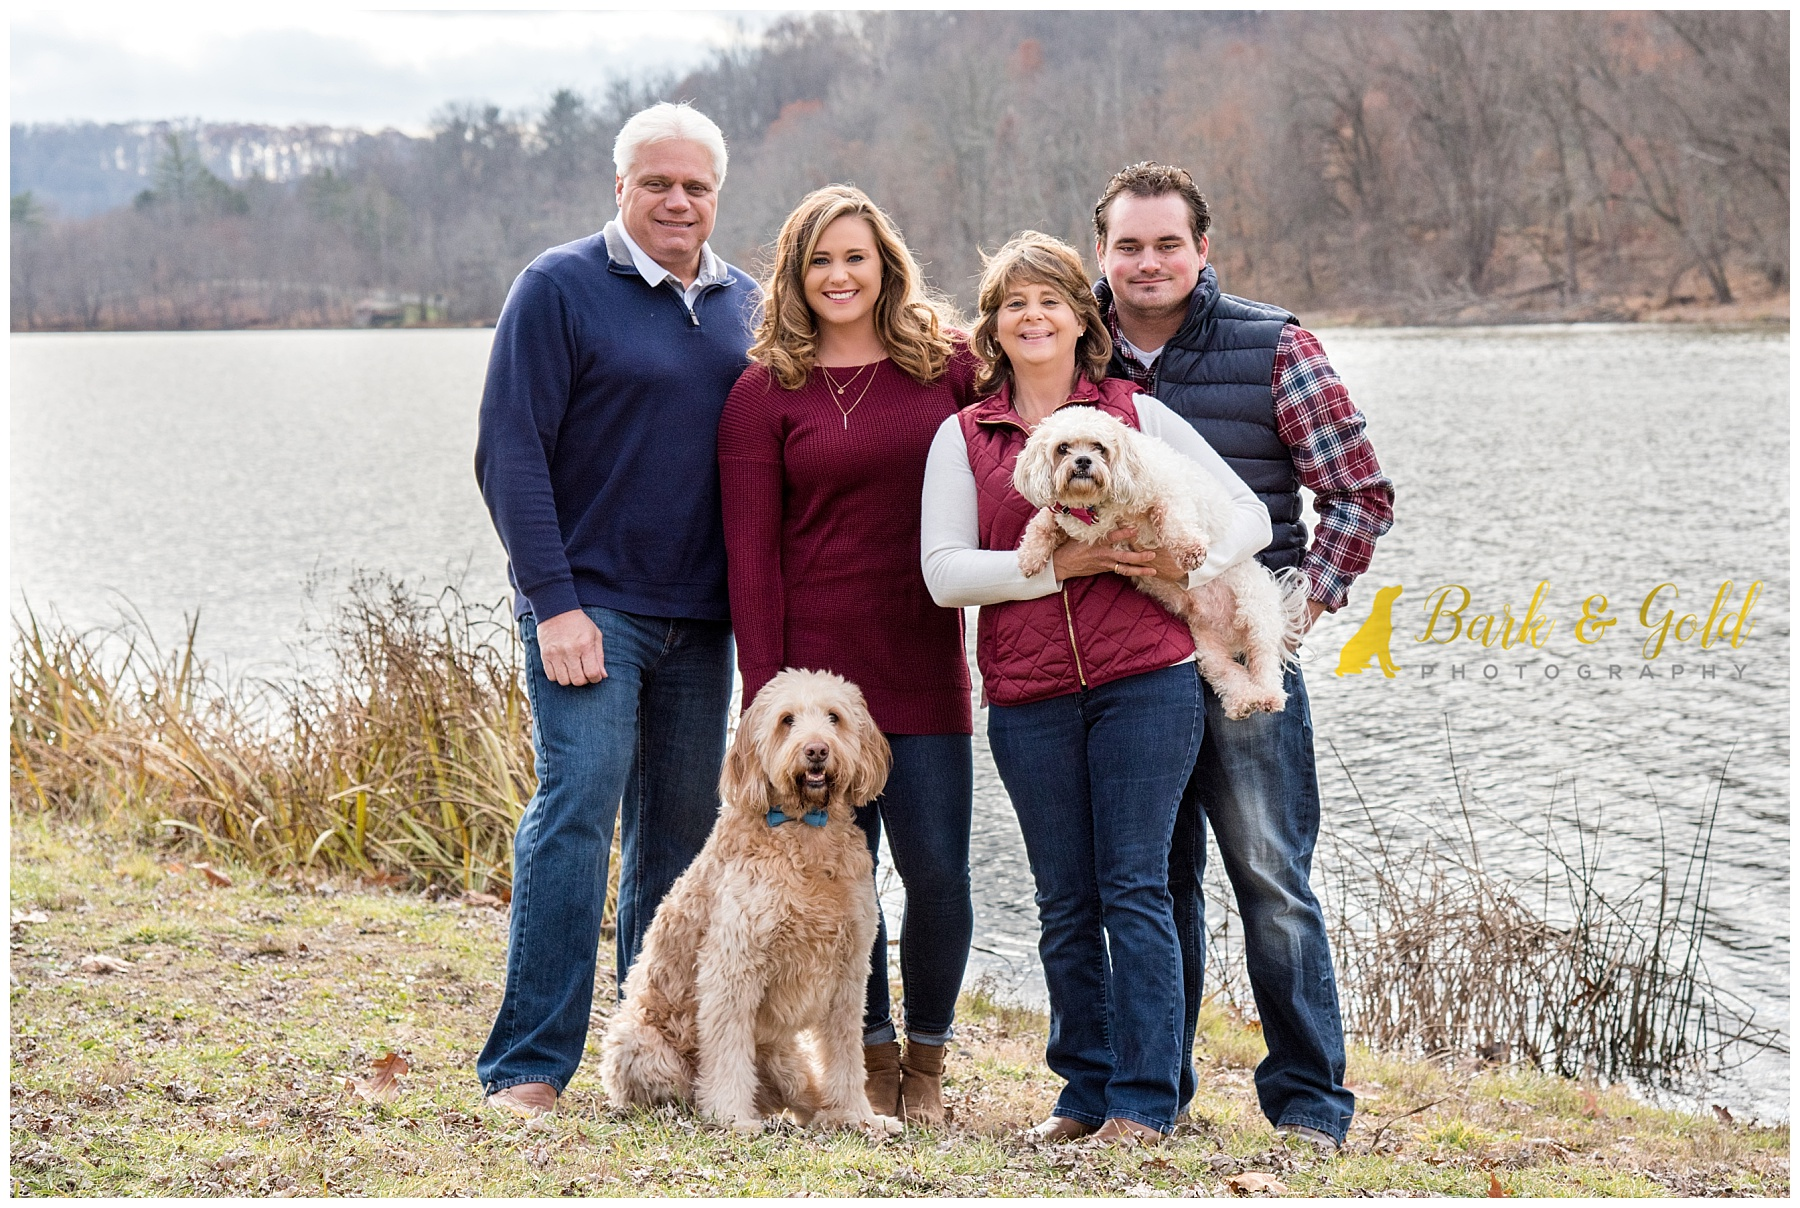 family poses with two dogs by lake and boathouse at North Park